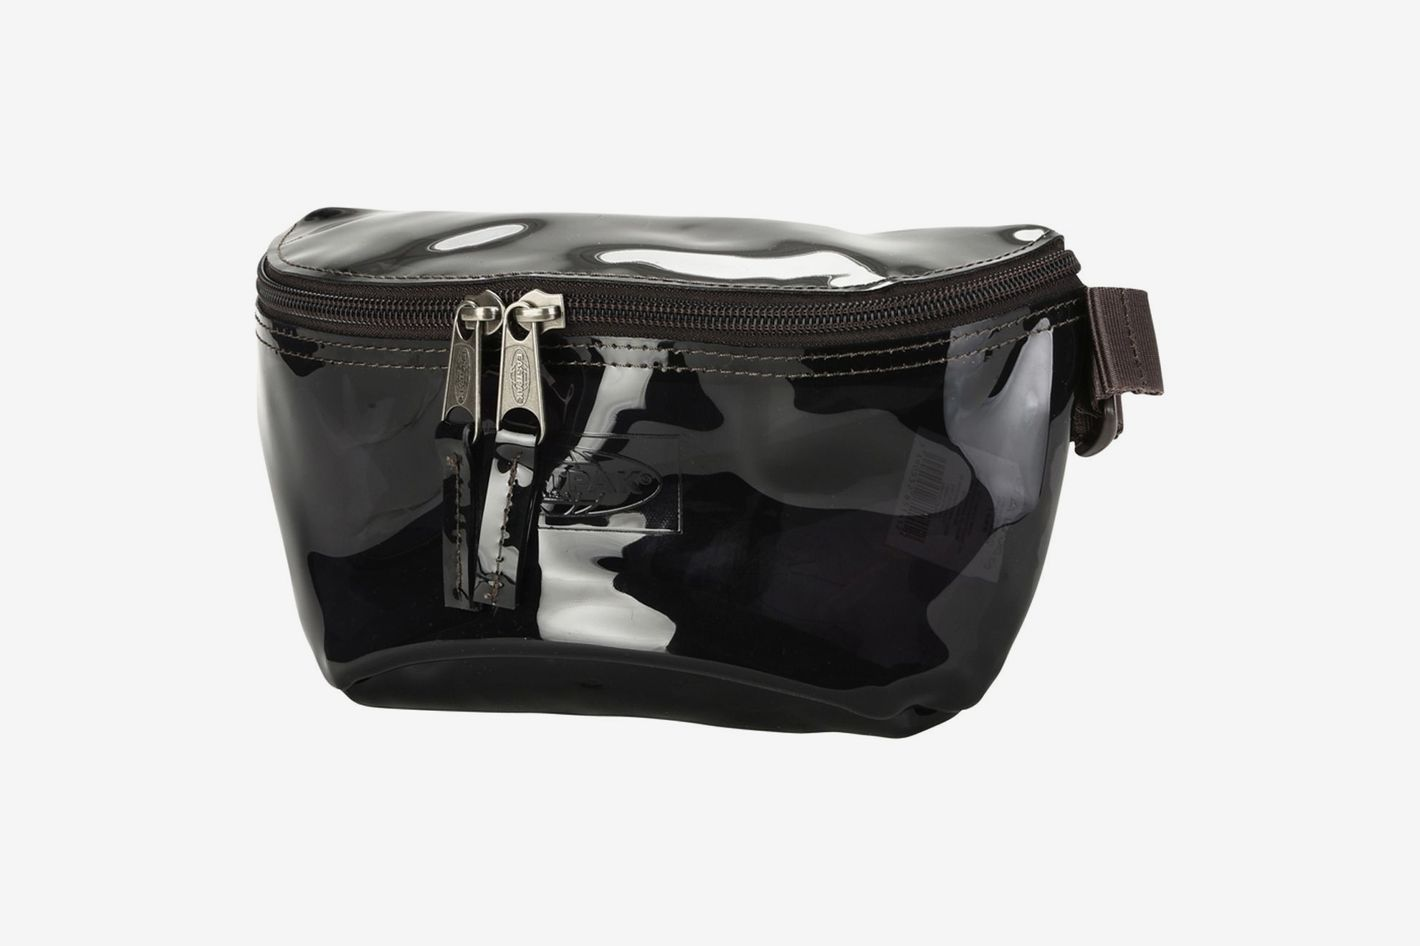 c98c4643f The 16 Best Designer Fanny Packs for 2018